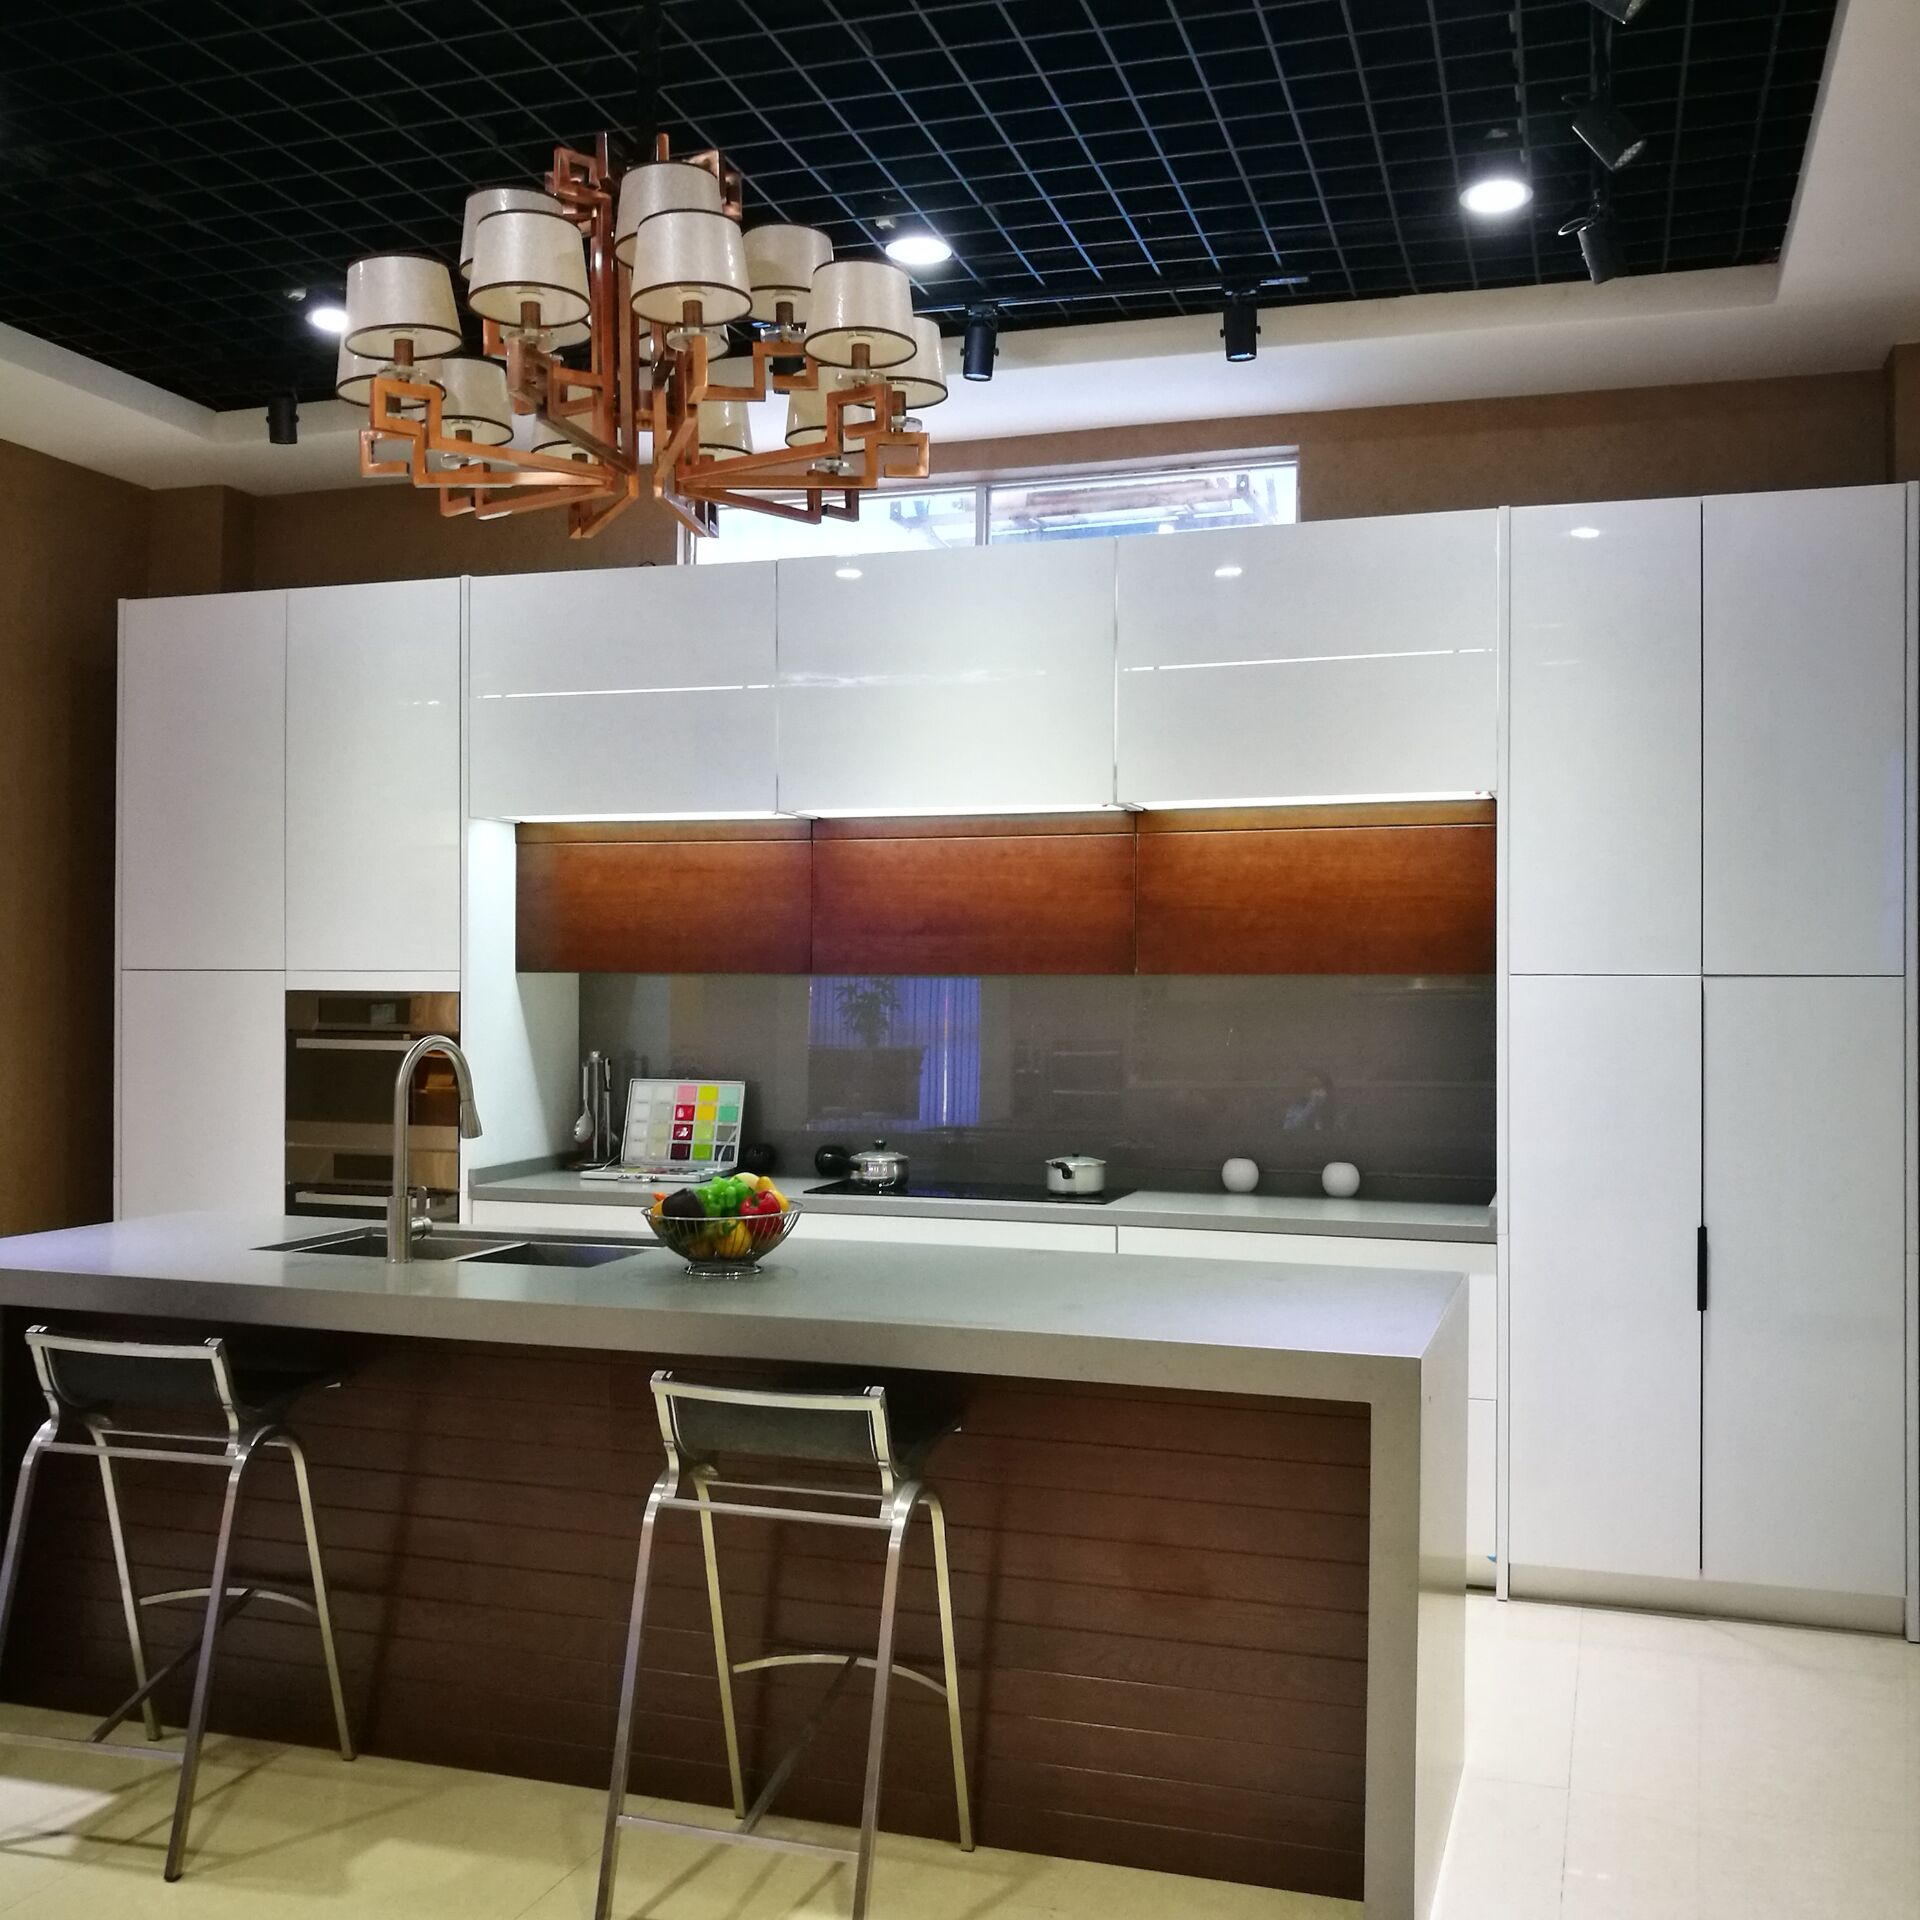 Kitchen Cabinet Company: Top 10 White Lacquer Kitchen Cabinet From Chinese Supplier